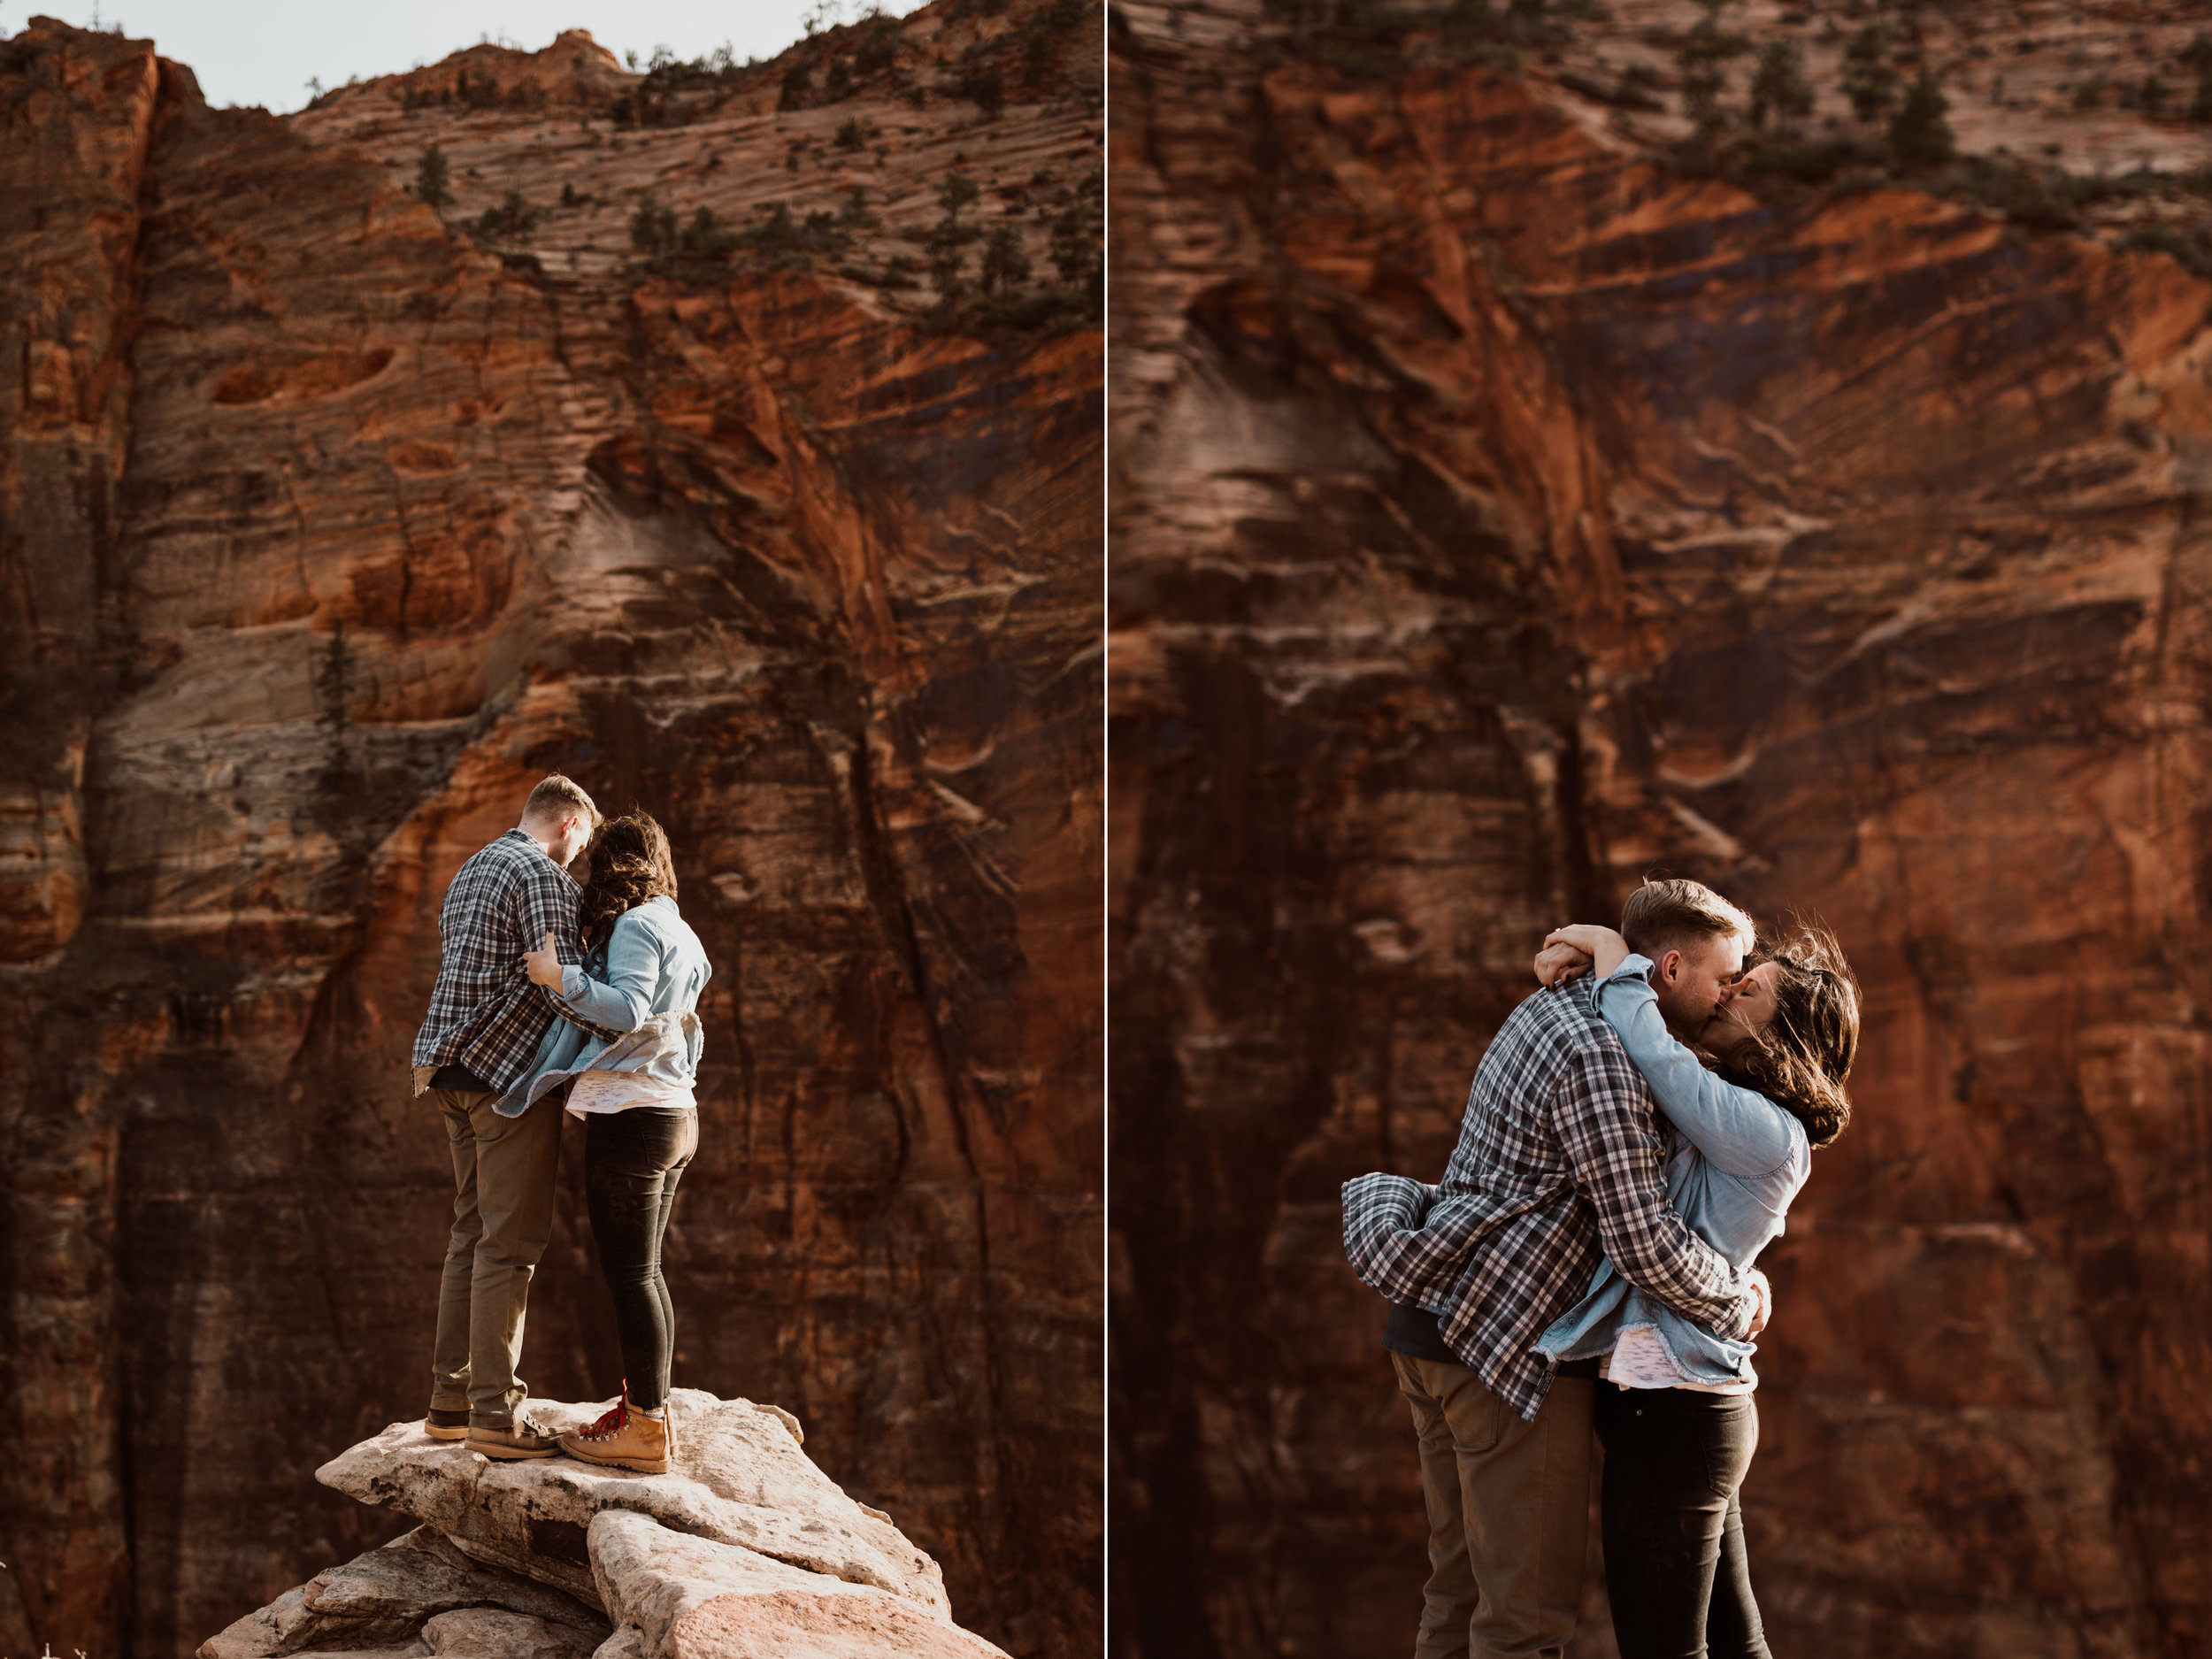 zion-national-park-engagements-55.jpg